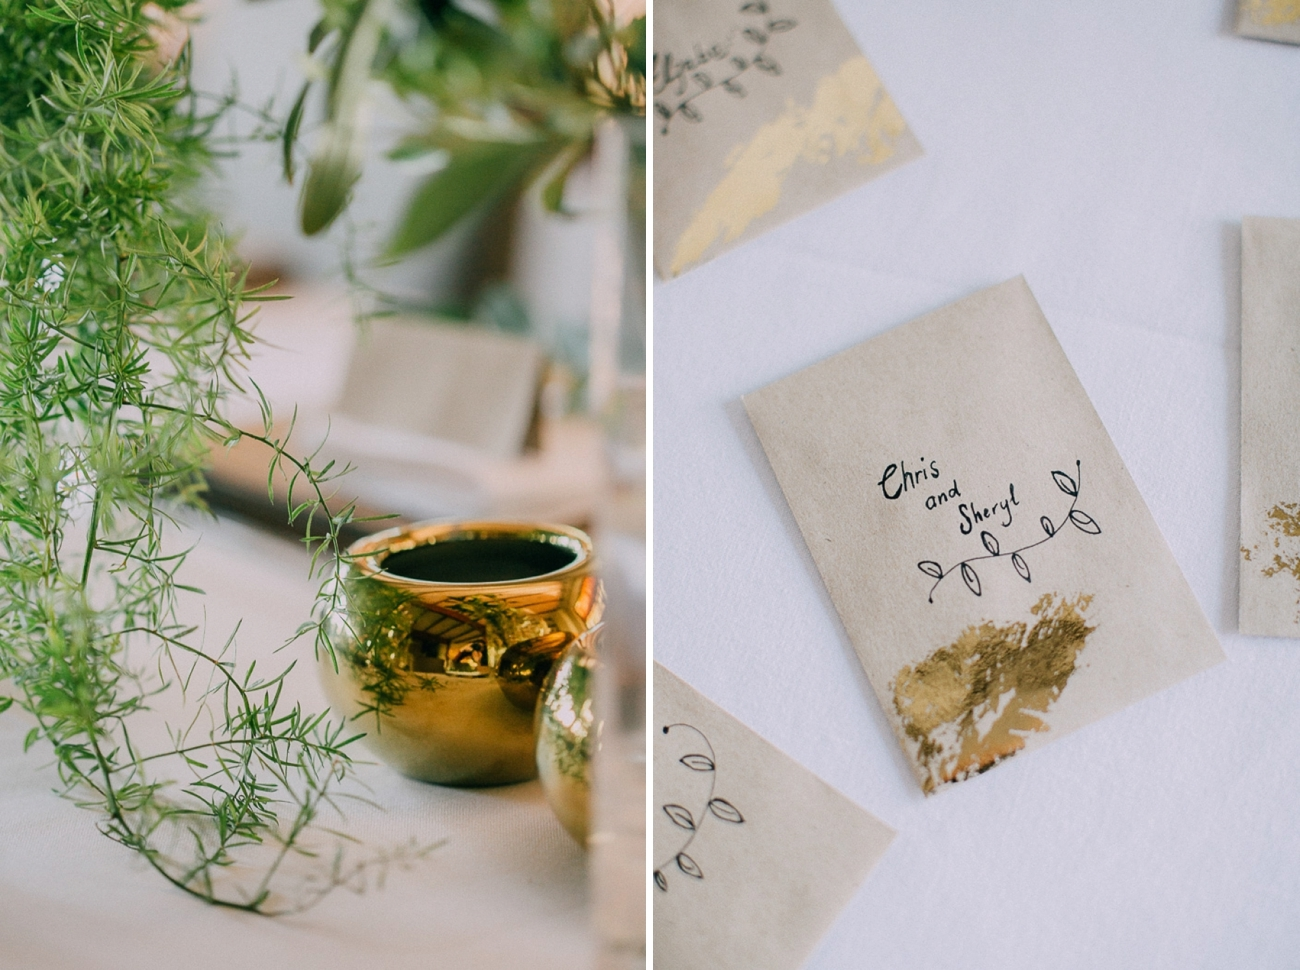 Gold Foil Escort Cards | Credit: Michelle du Toit